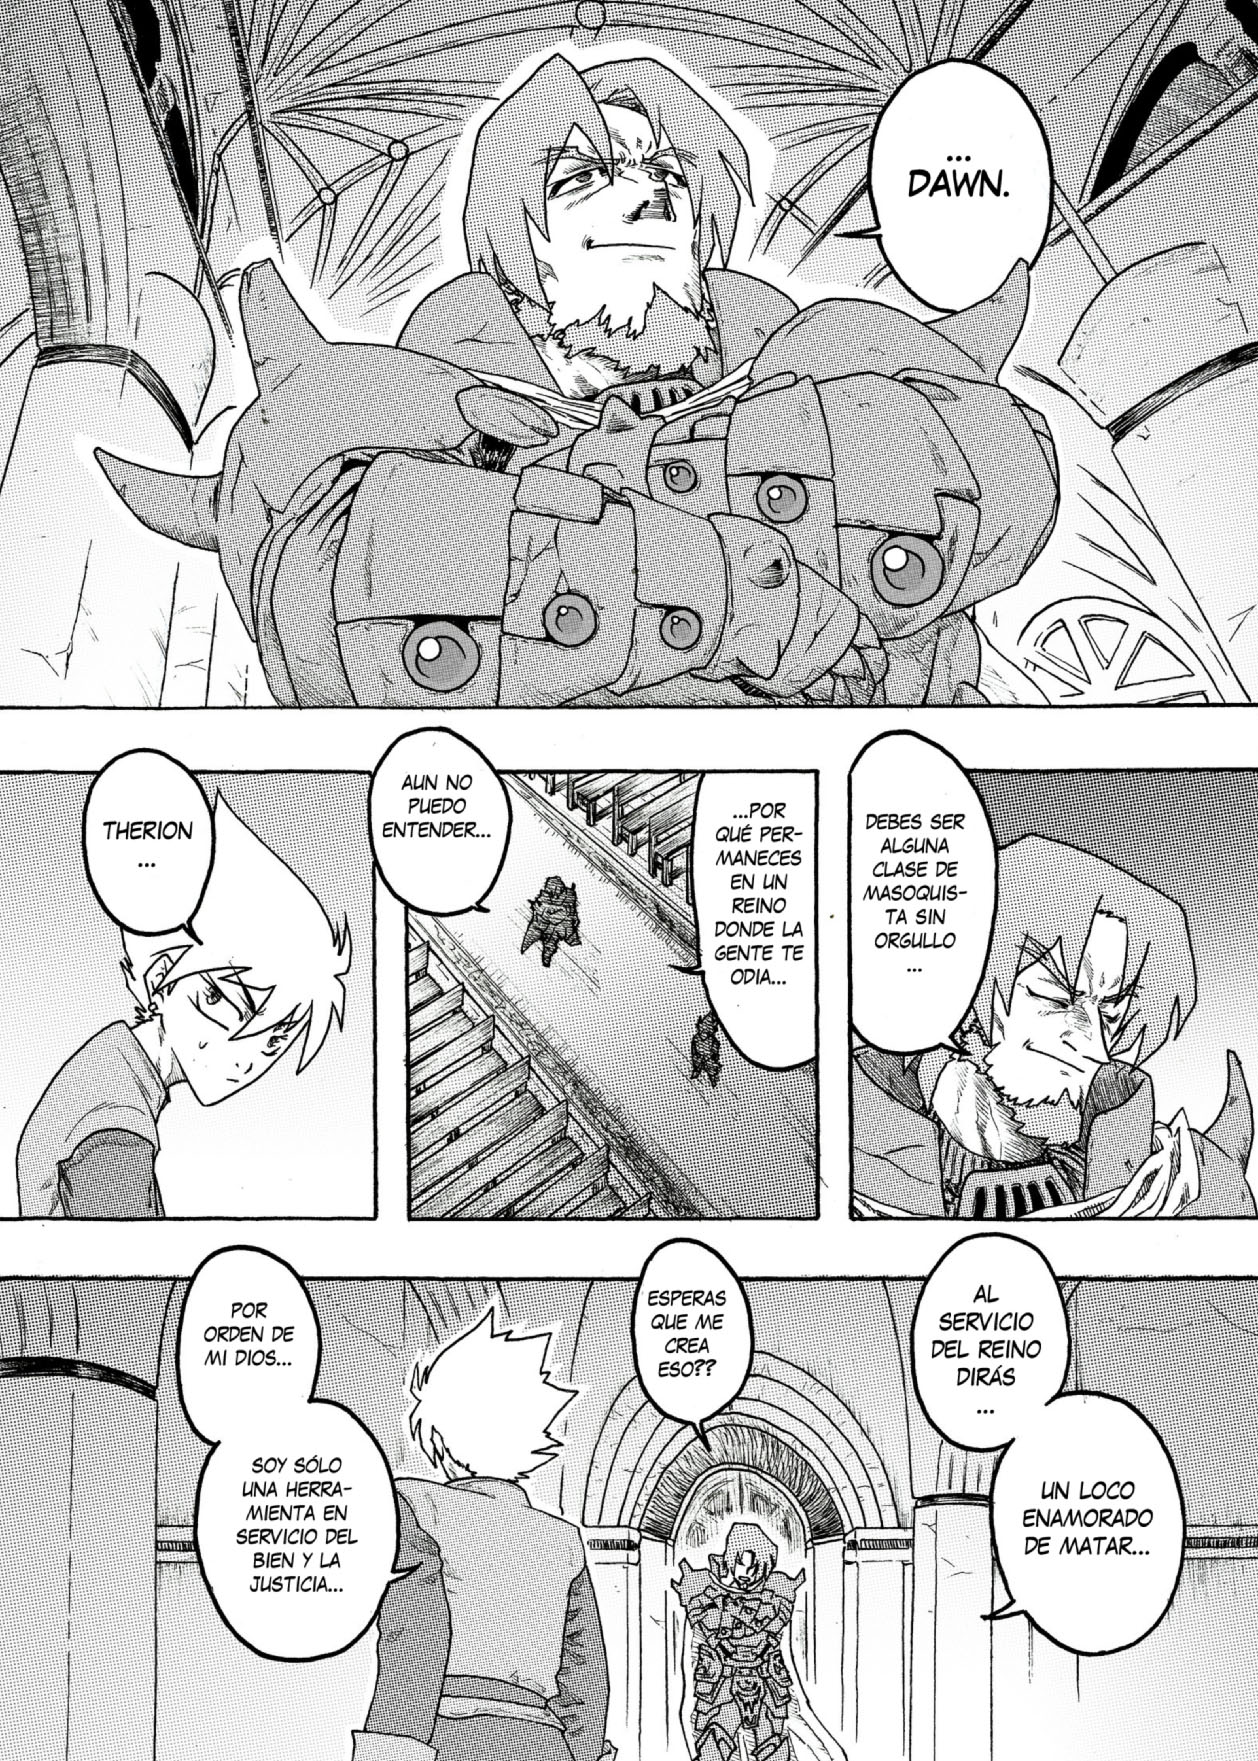 Dawn-page-15